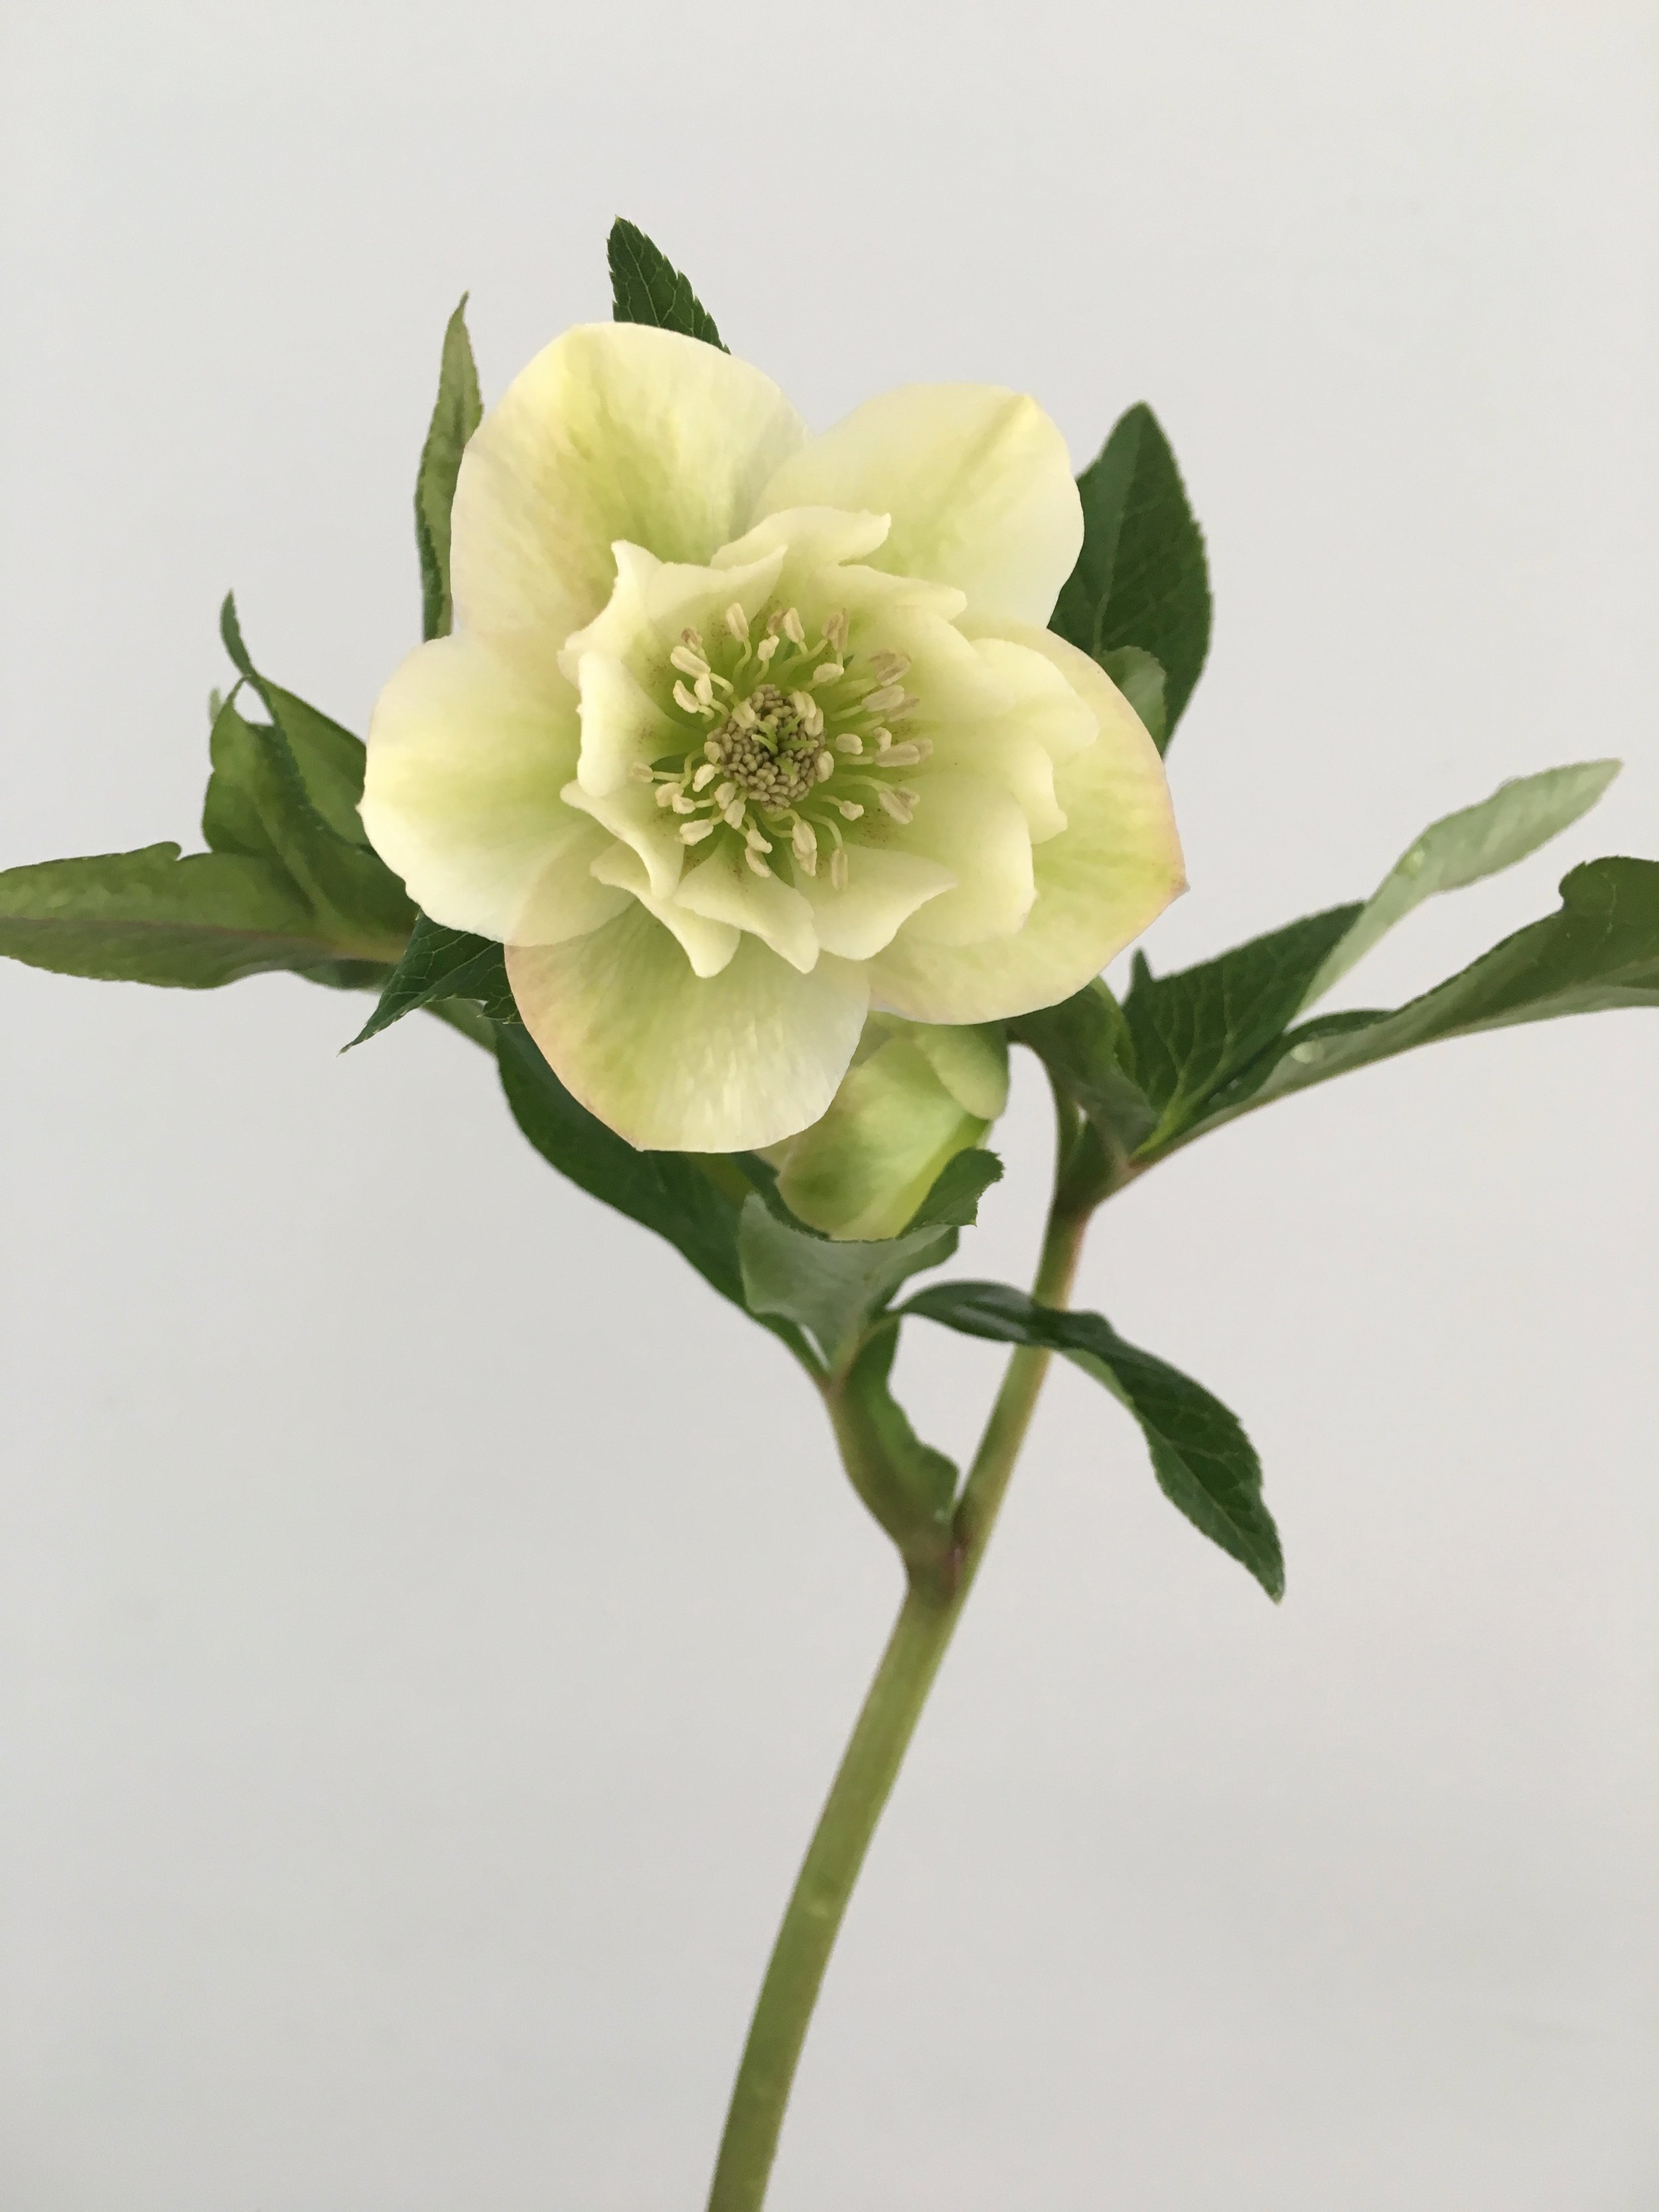 Video How To Grow Hydrate And Hold Hellebores As Cut Flowers